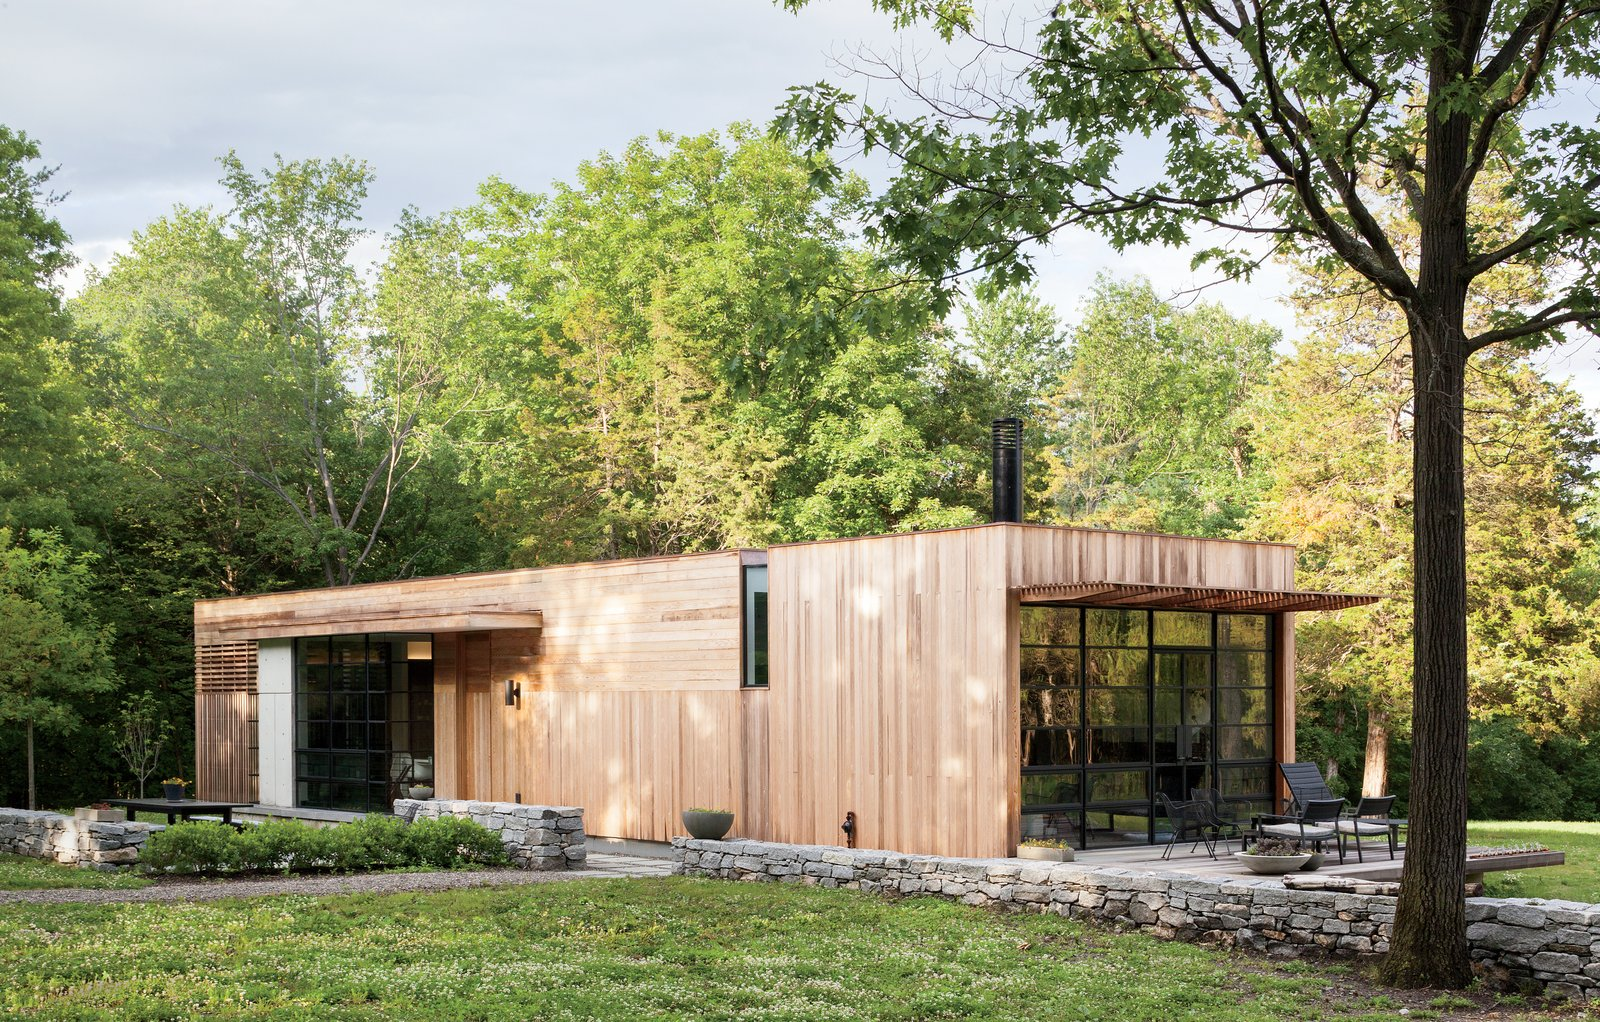 In realizing their dream to build a country retreat in upstate New York, Sandy Chilewich and Joe Sultan—proprietors of the textiles firm Chilewich|Sultan—eschewed a mountainous view for an understated wooded plot. At 800 square feet, the flat-roofed home is a modest structure for the expansive 10-acre property. Tagged: Exterior, House, Flat RoofLine, and Wood Siding Material.  Superb Single-Story Homes by Luke Hopping from An Architect's Tips for Keeping Your Electric Bills Down